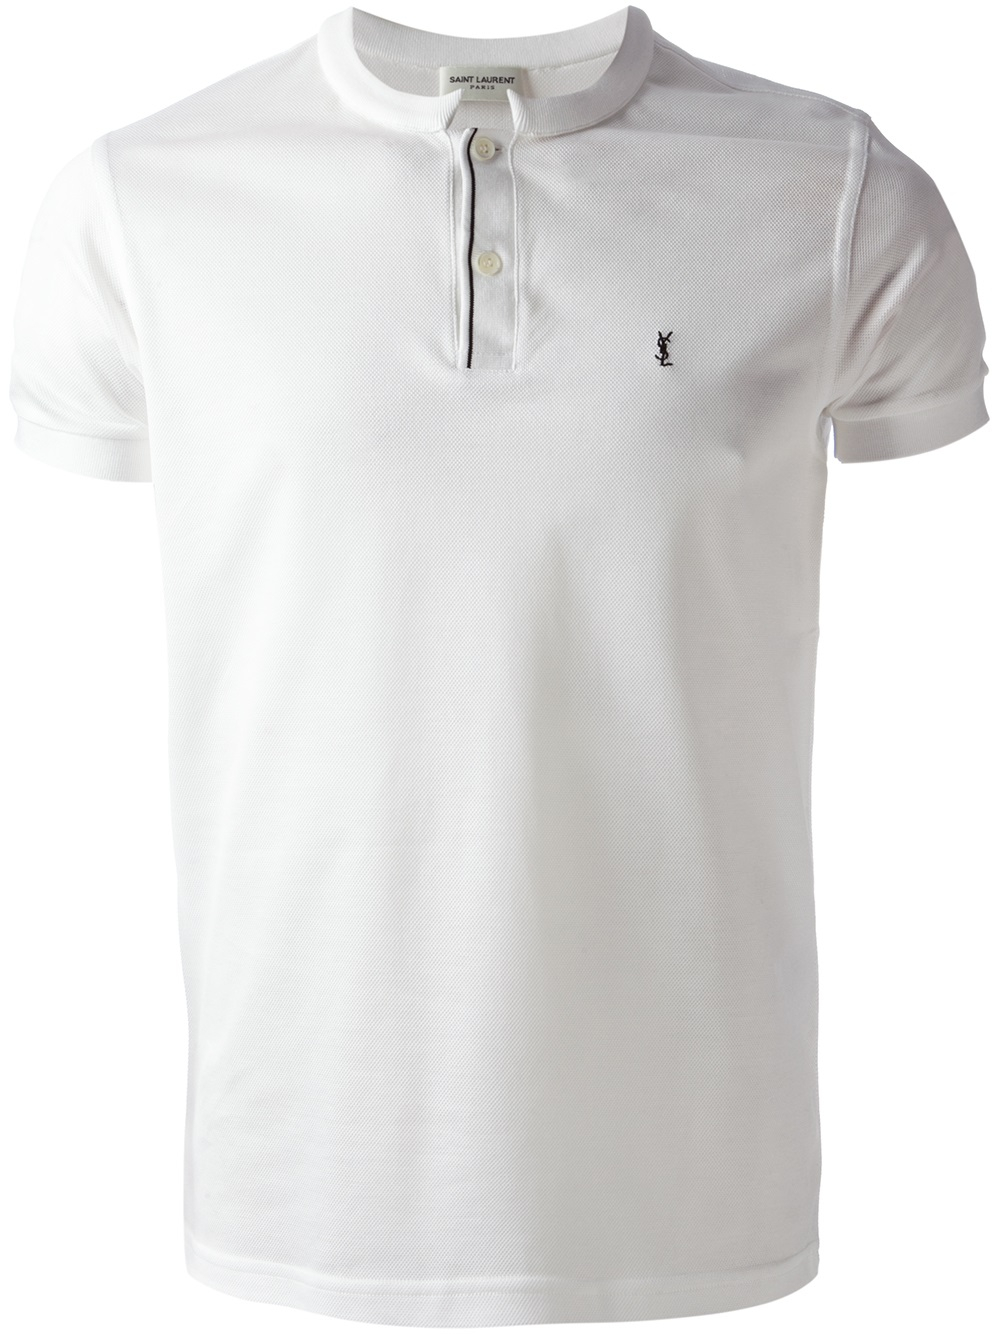 1c6e6d483f7 Saint Laurent Band Collar Polo Shirt in White for Men - Lyst